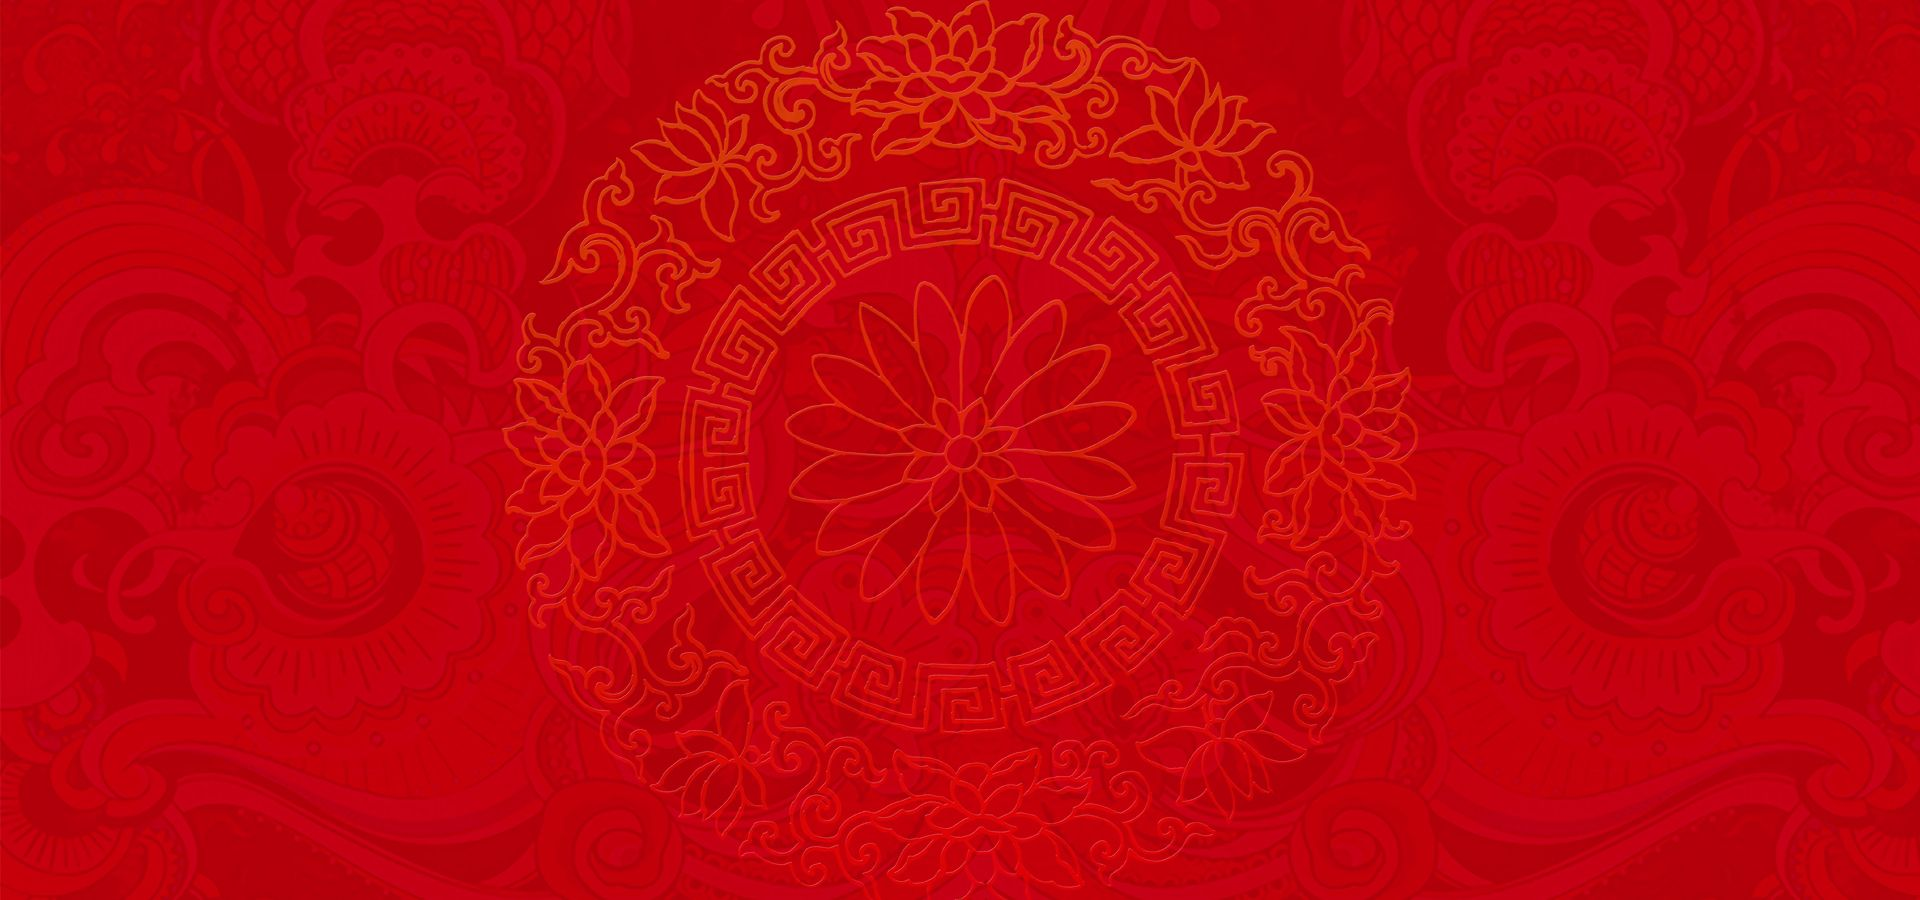 Chinese New Year Festive Red Theme in 2019  Chinese new